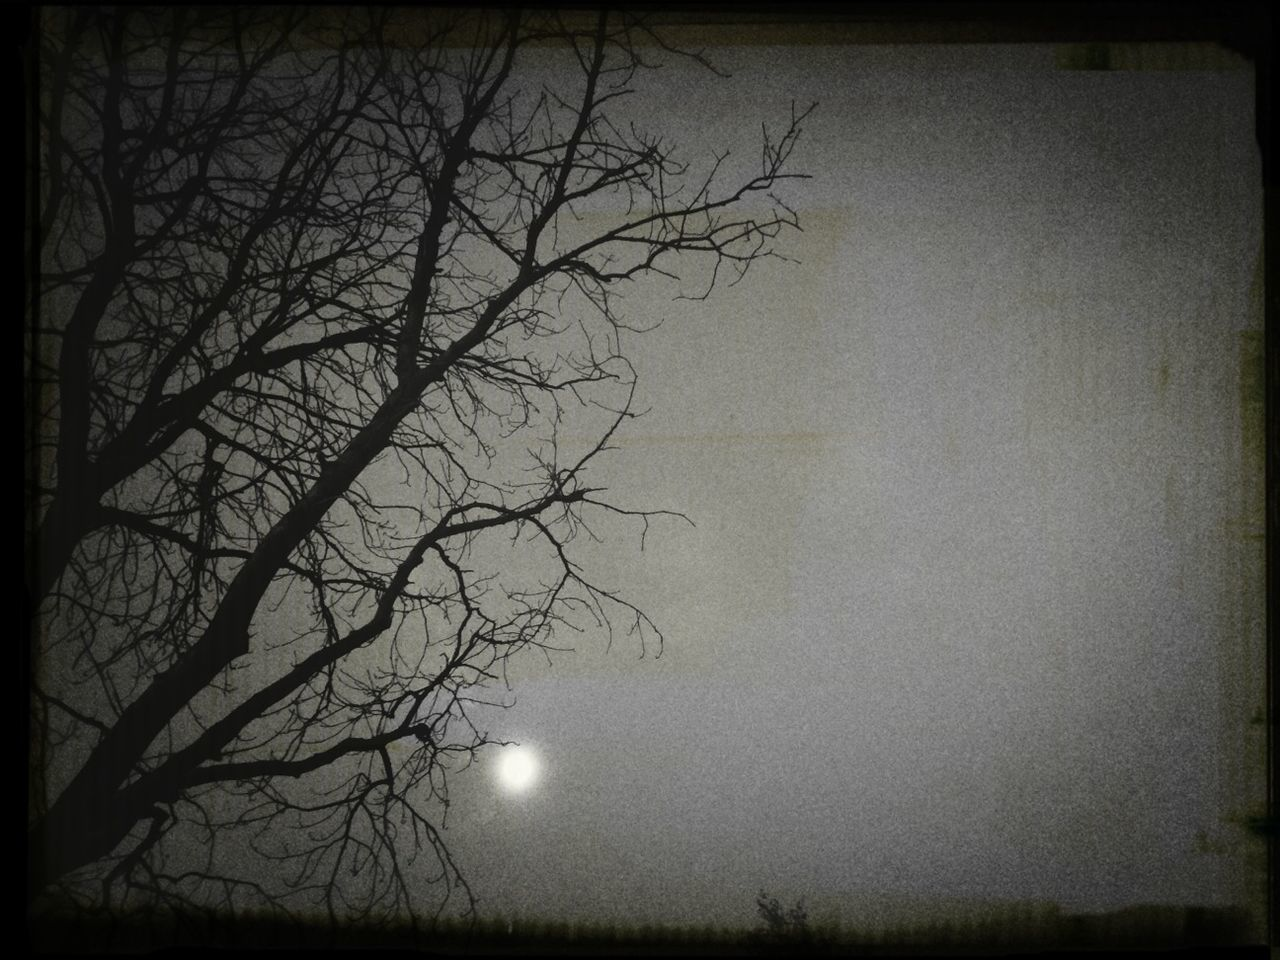 bare tree, tree, night, moon, beauty in nature, branch, nature, landscape, outdoors, no people, sky